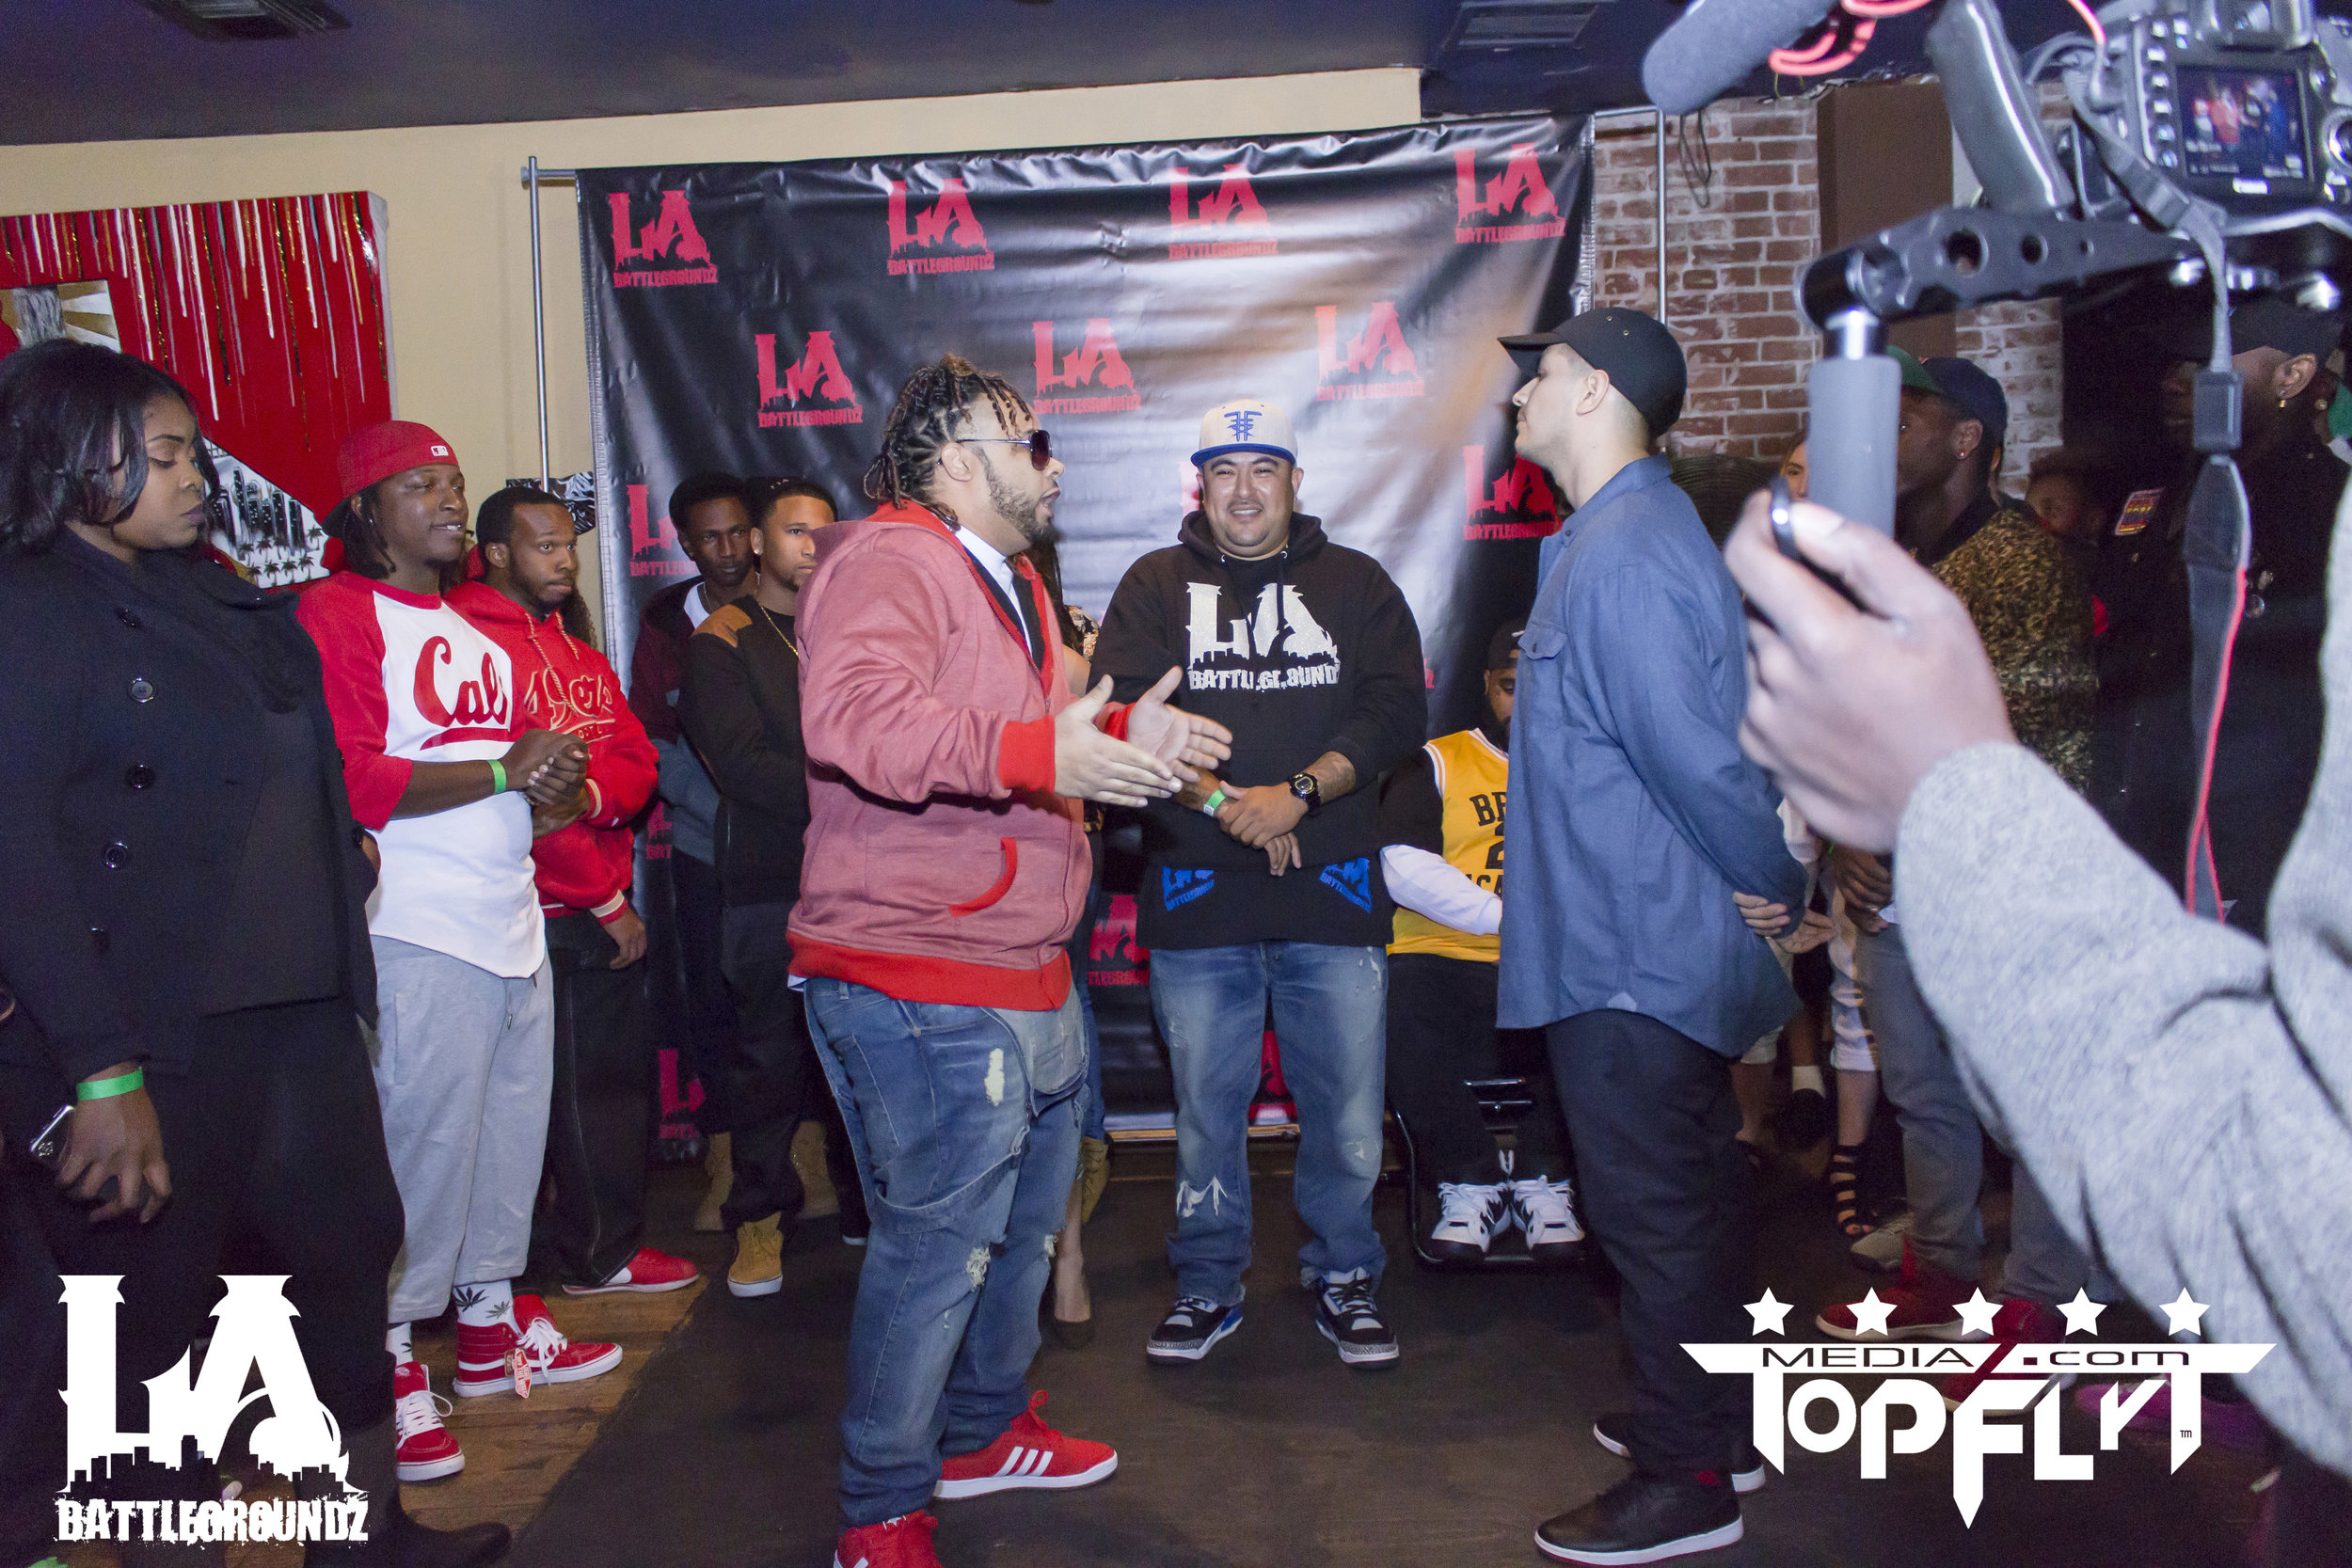 LA Battlegroundz - Decembarfest - The Christening_22.jpg